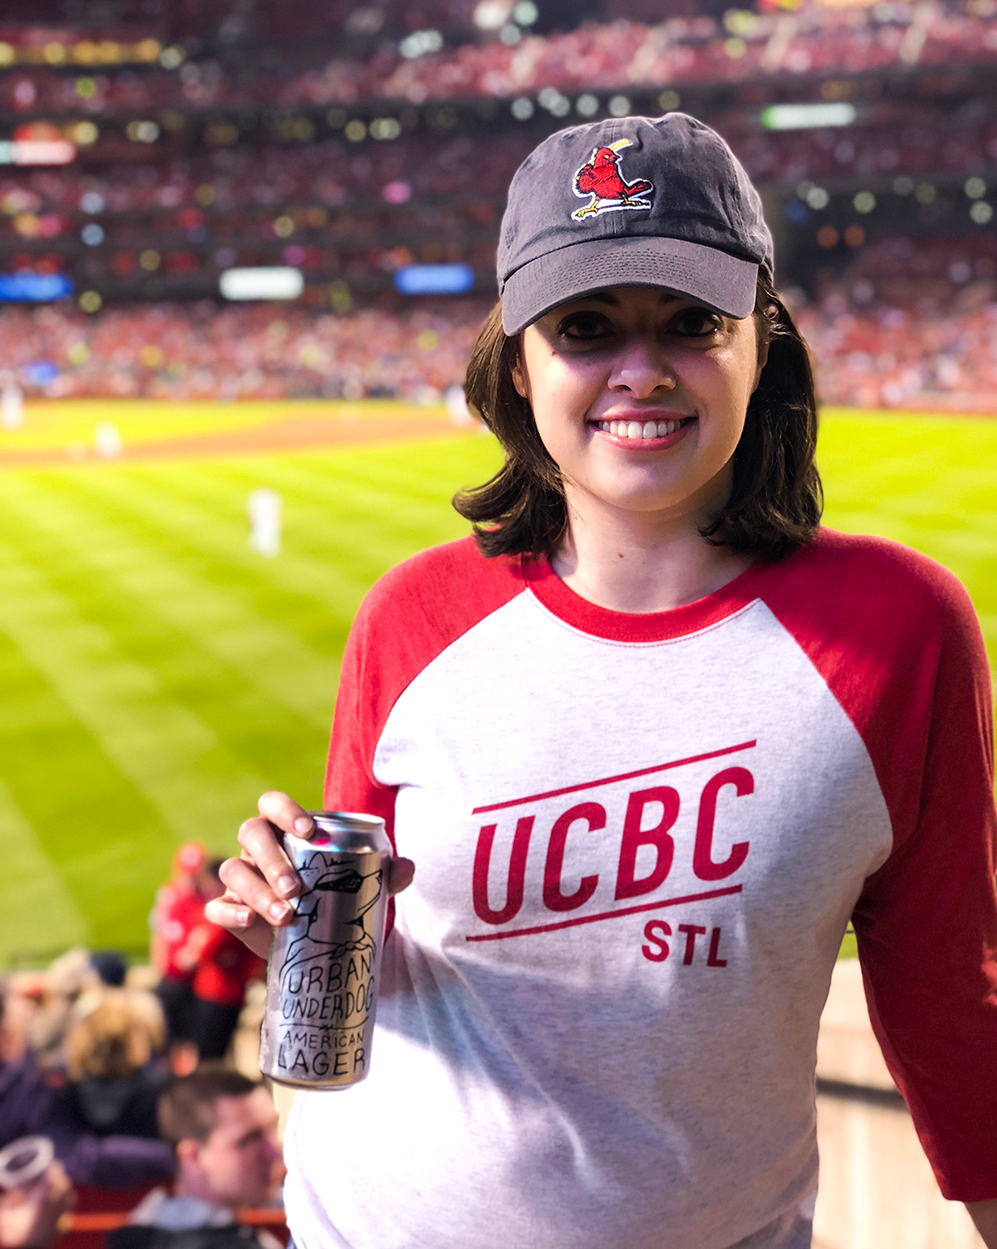 Where to find Urban Chestnut bier at Busch Stadium for the 2019 season!